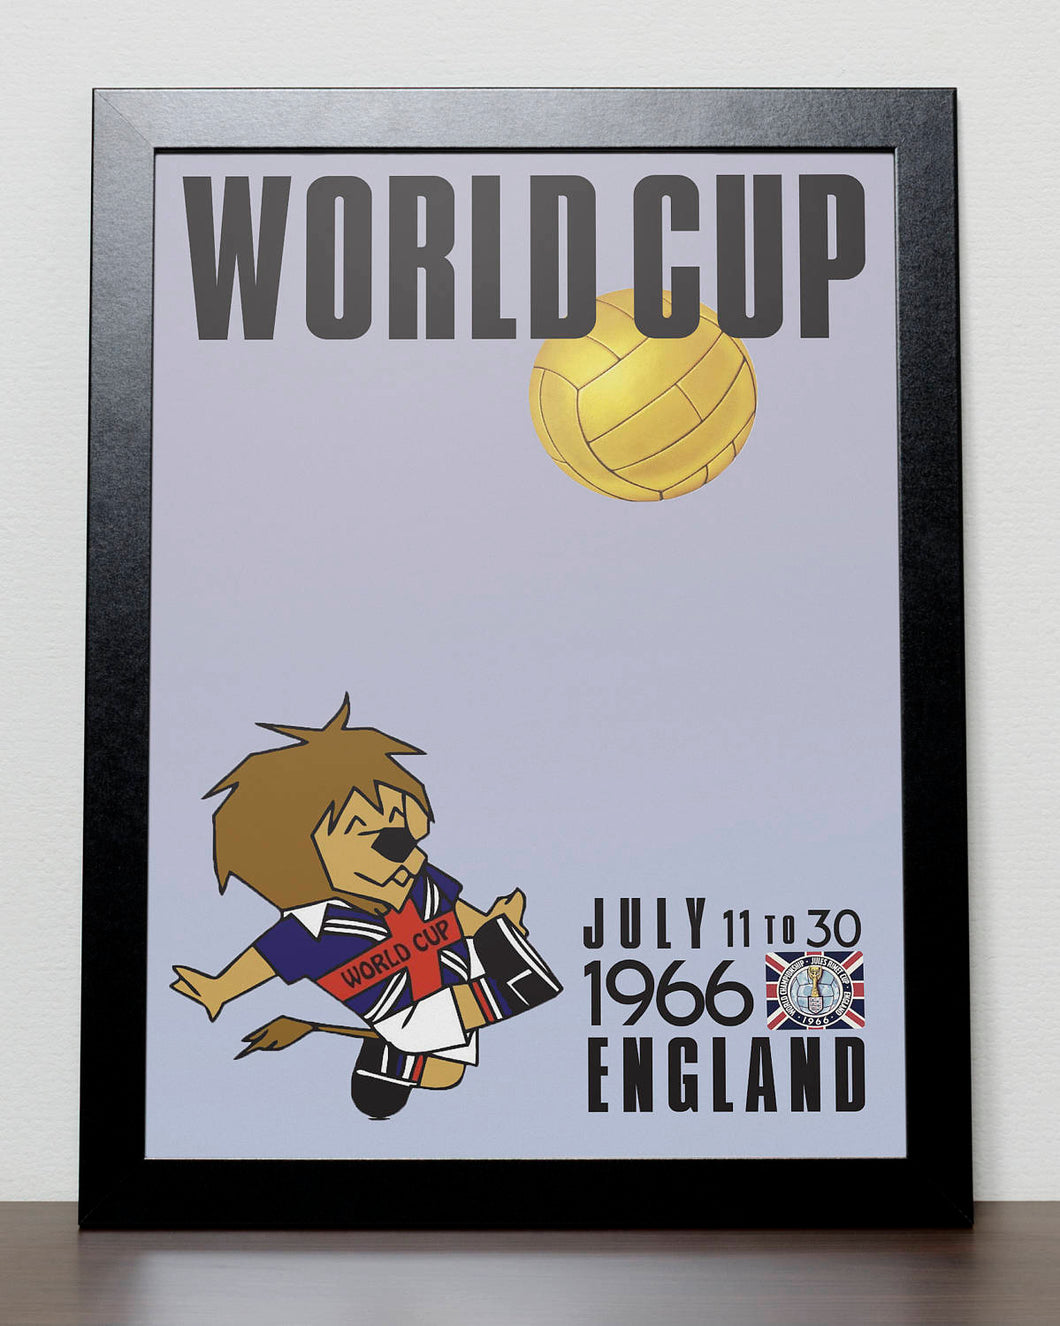 FIFA World Cup 1966 poster - England